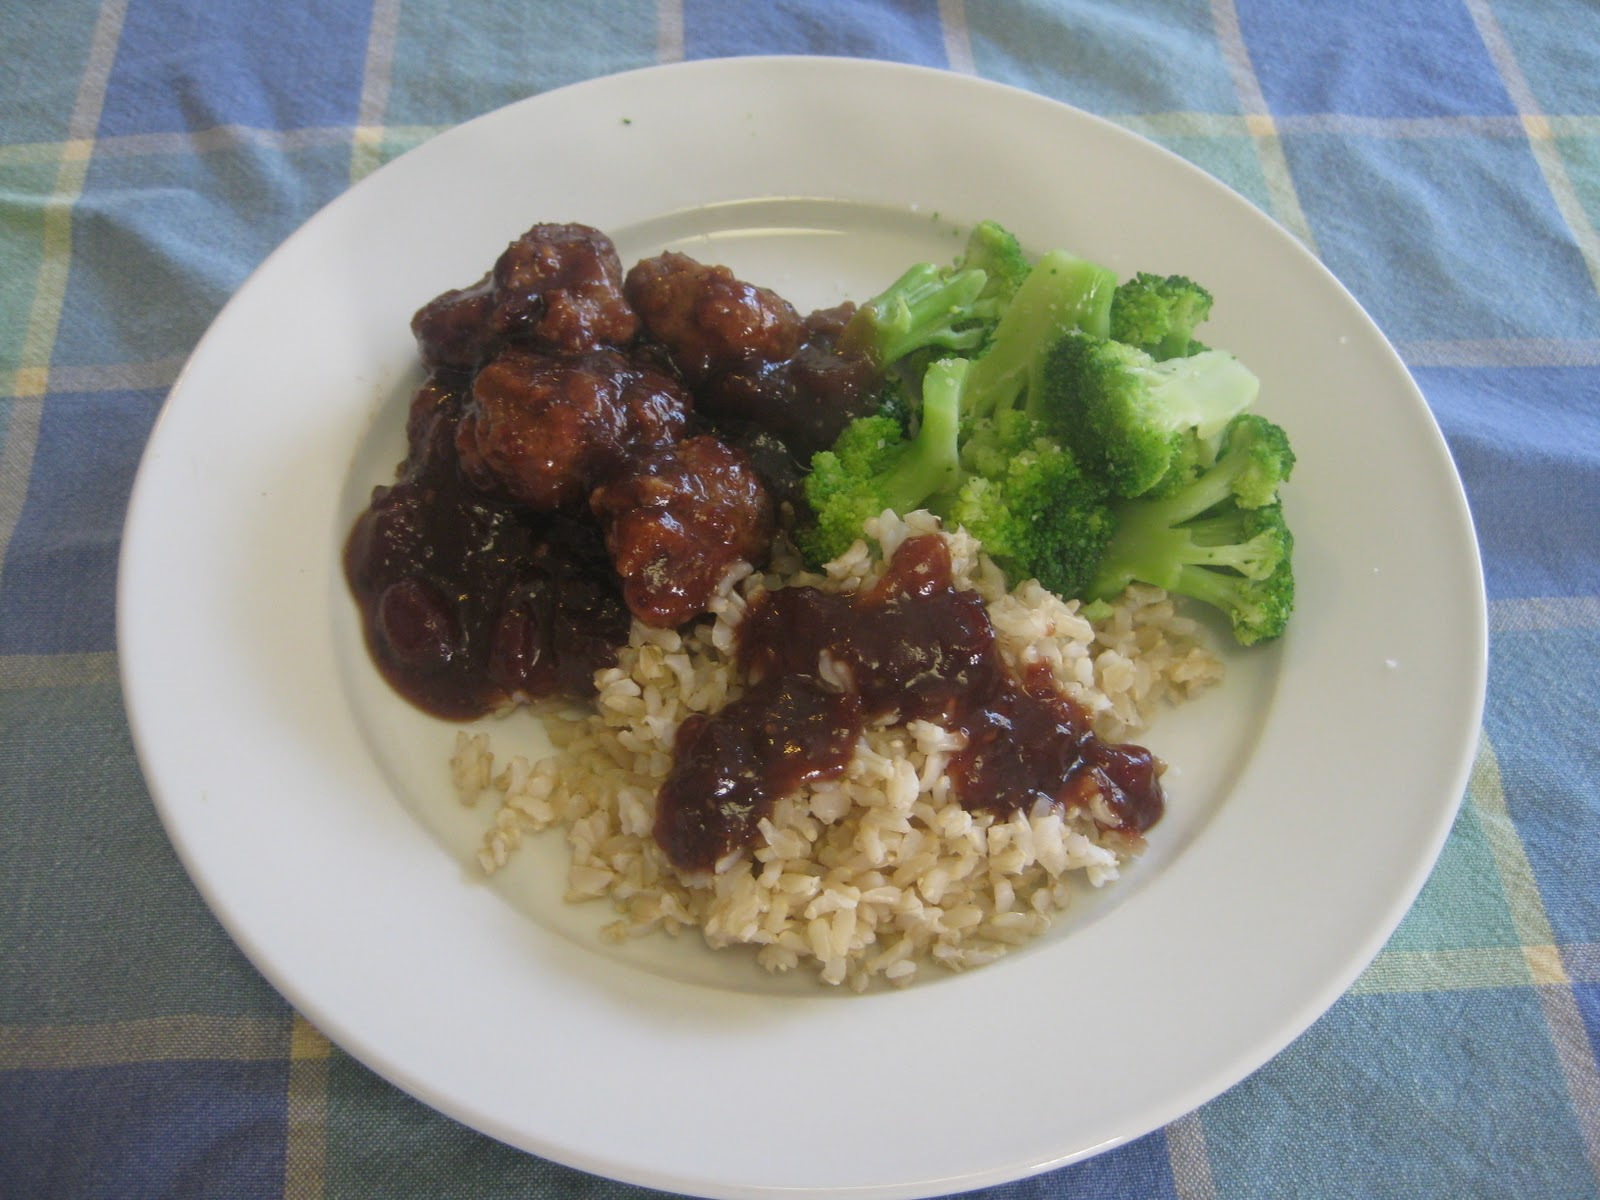 Heidi's Recipes: Turkey Cranberry Meatballs Recipe